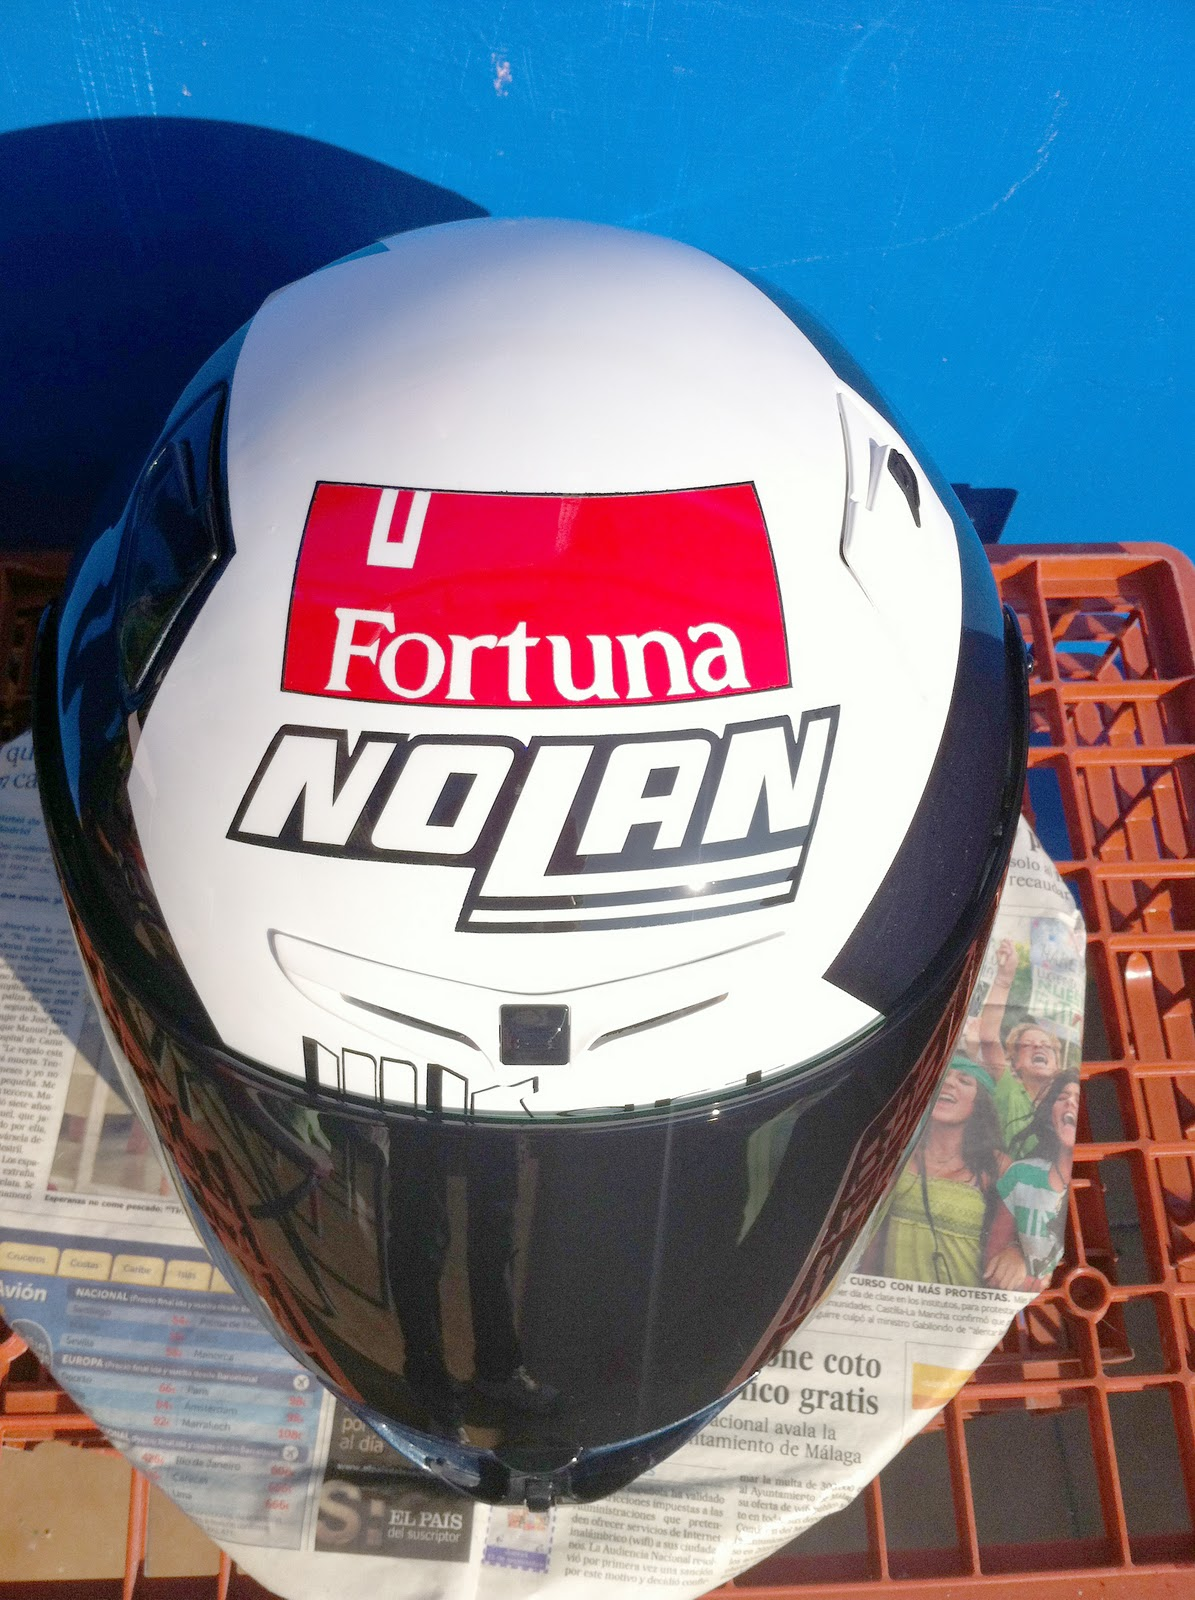 Nolan X802r Alberto Puig Replica Mk Art Productions Helmet Artists Stiker Helm Desain Rpha Lorenzo Its The Design Of Made On A That Currently Wearing Drivers Motogp This Wore